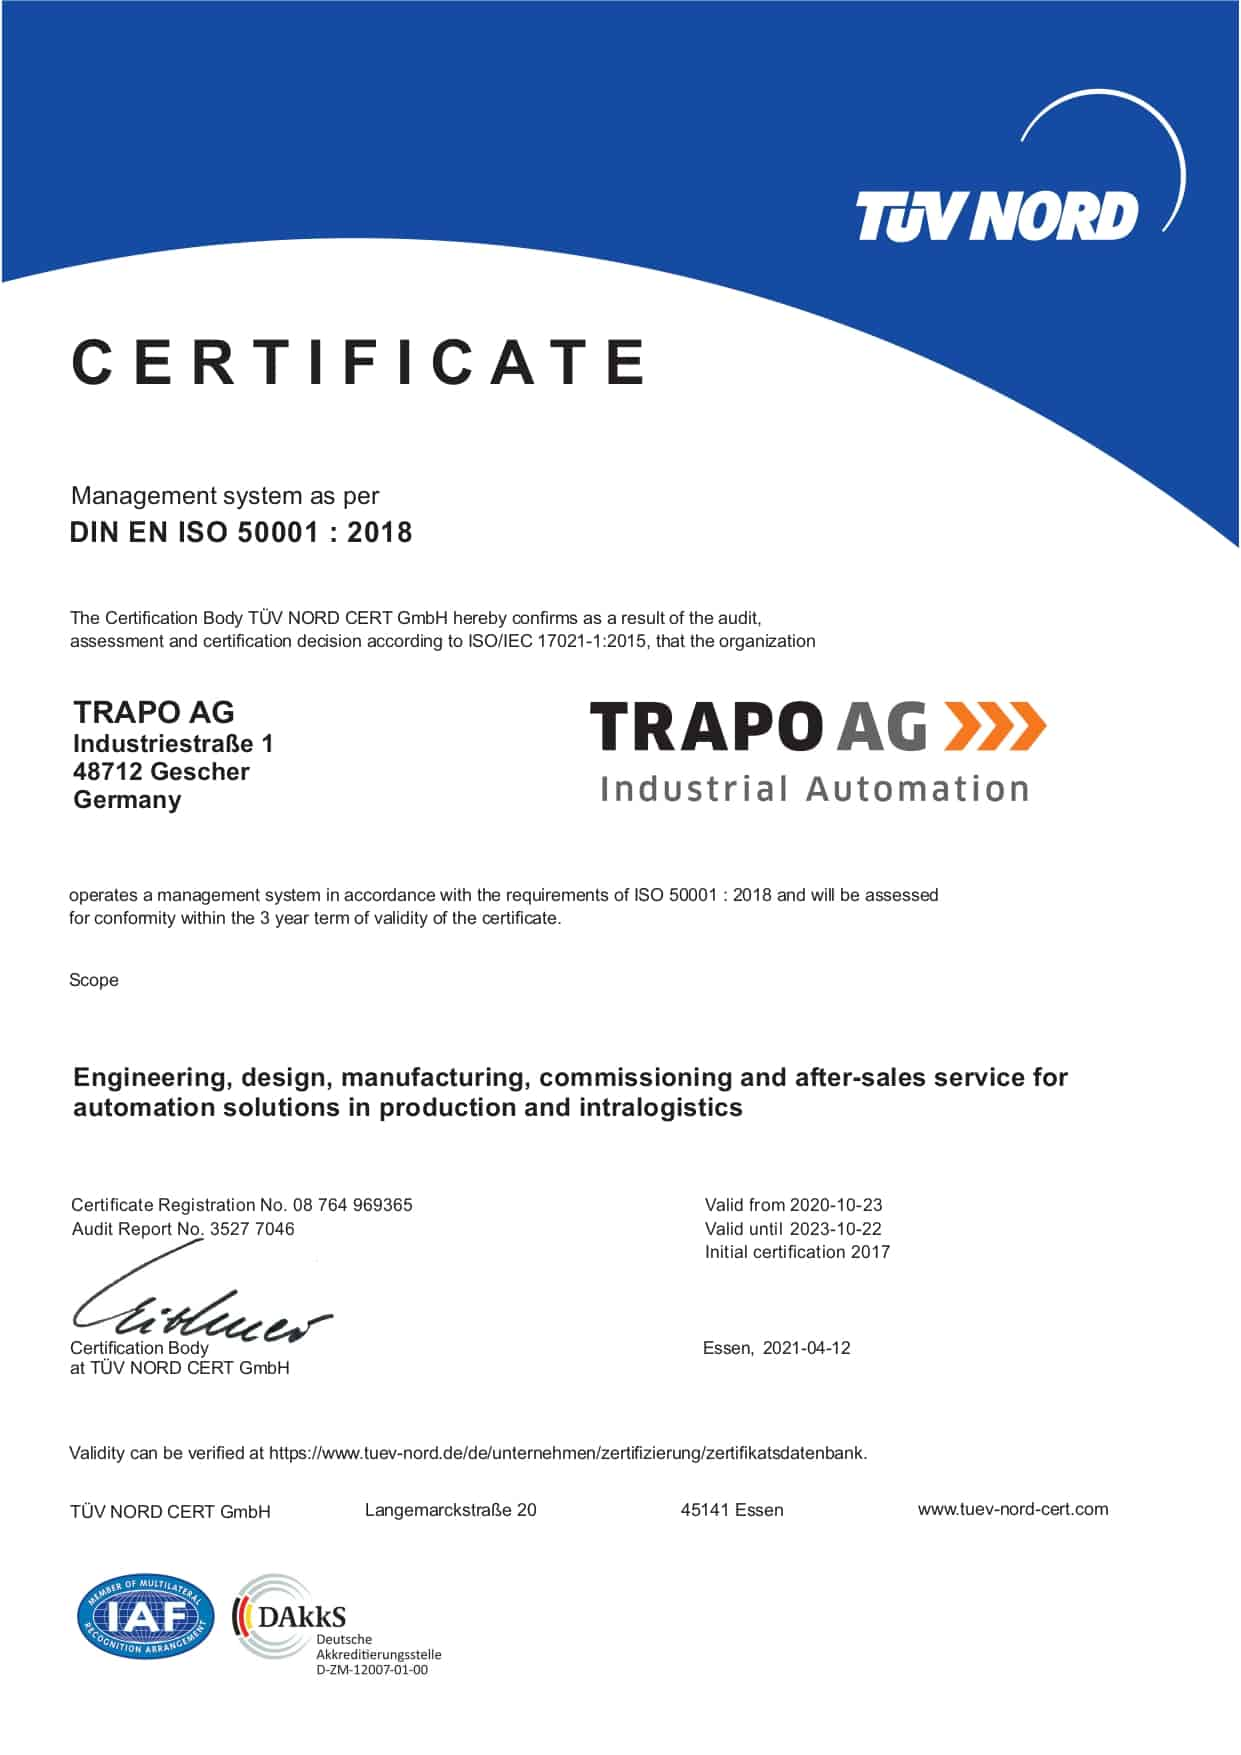 ISO 5001 certificate